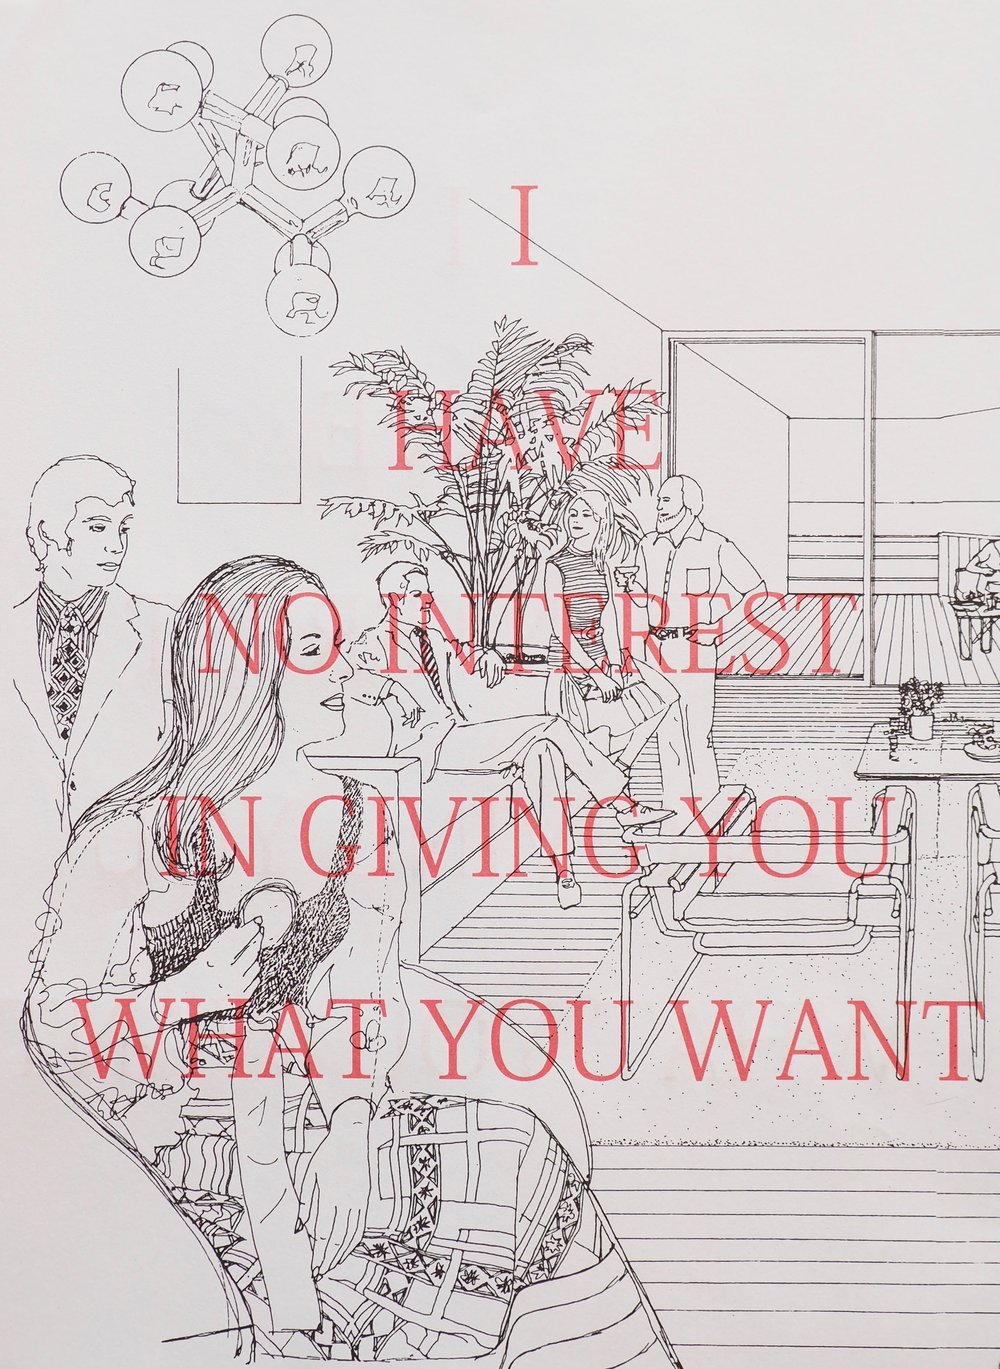 I Have No Interest in Giving You What You Want